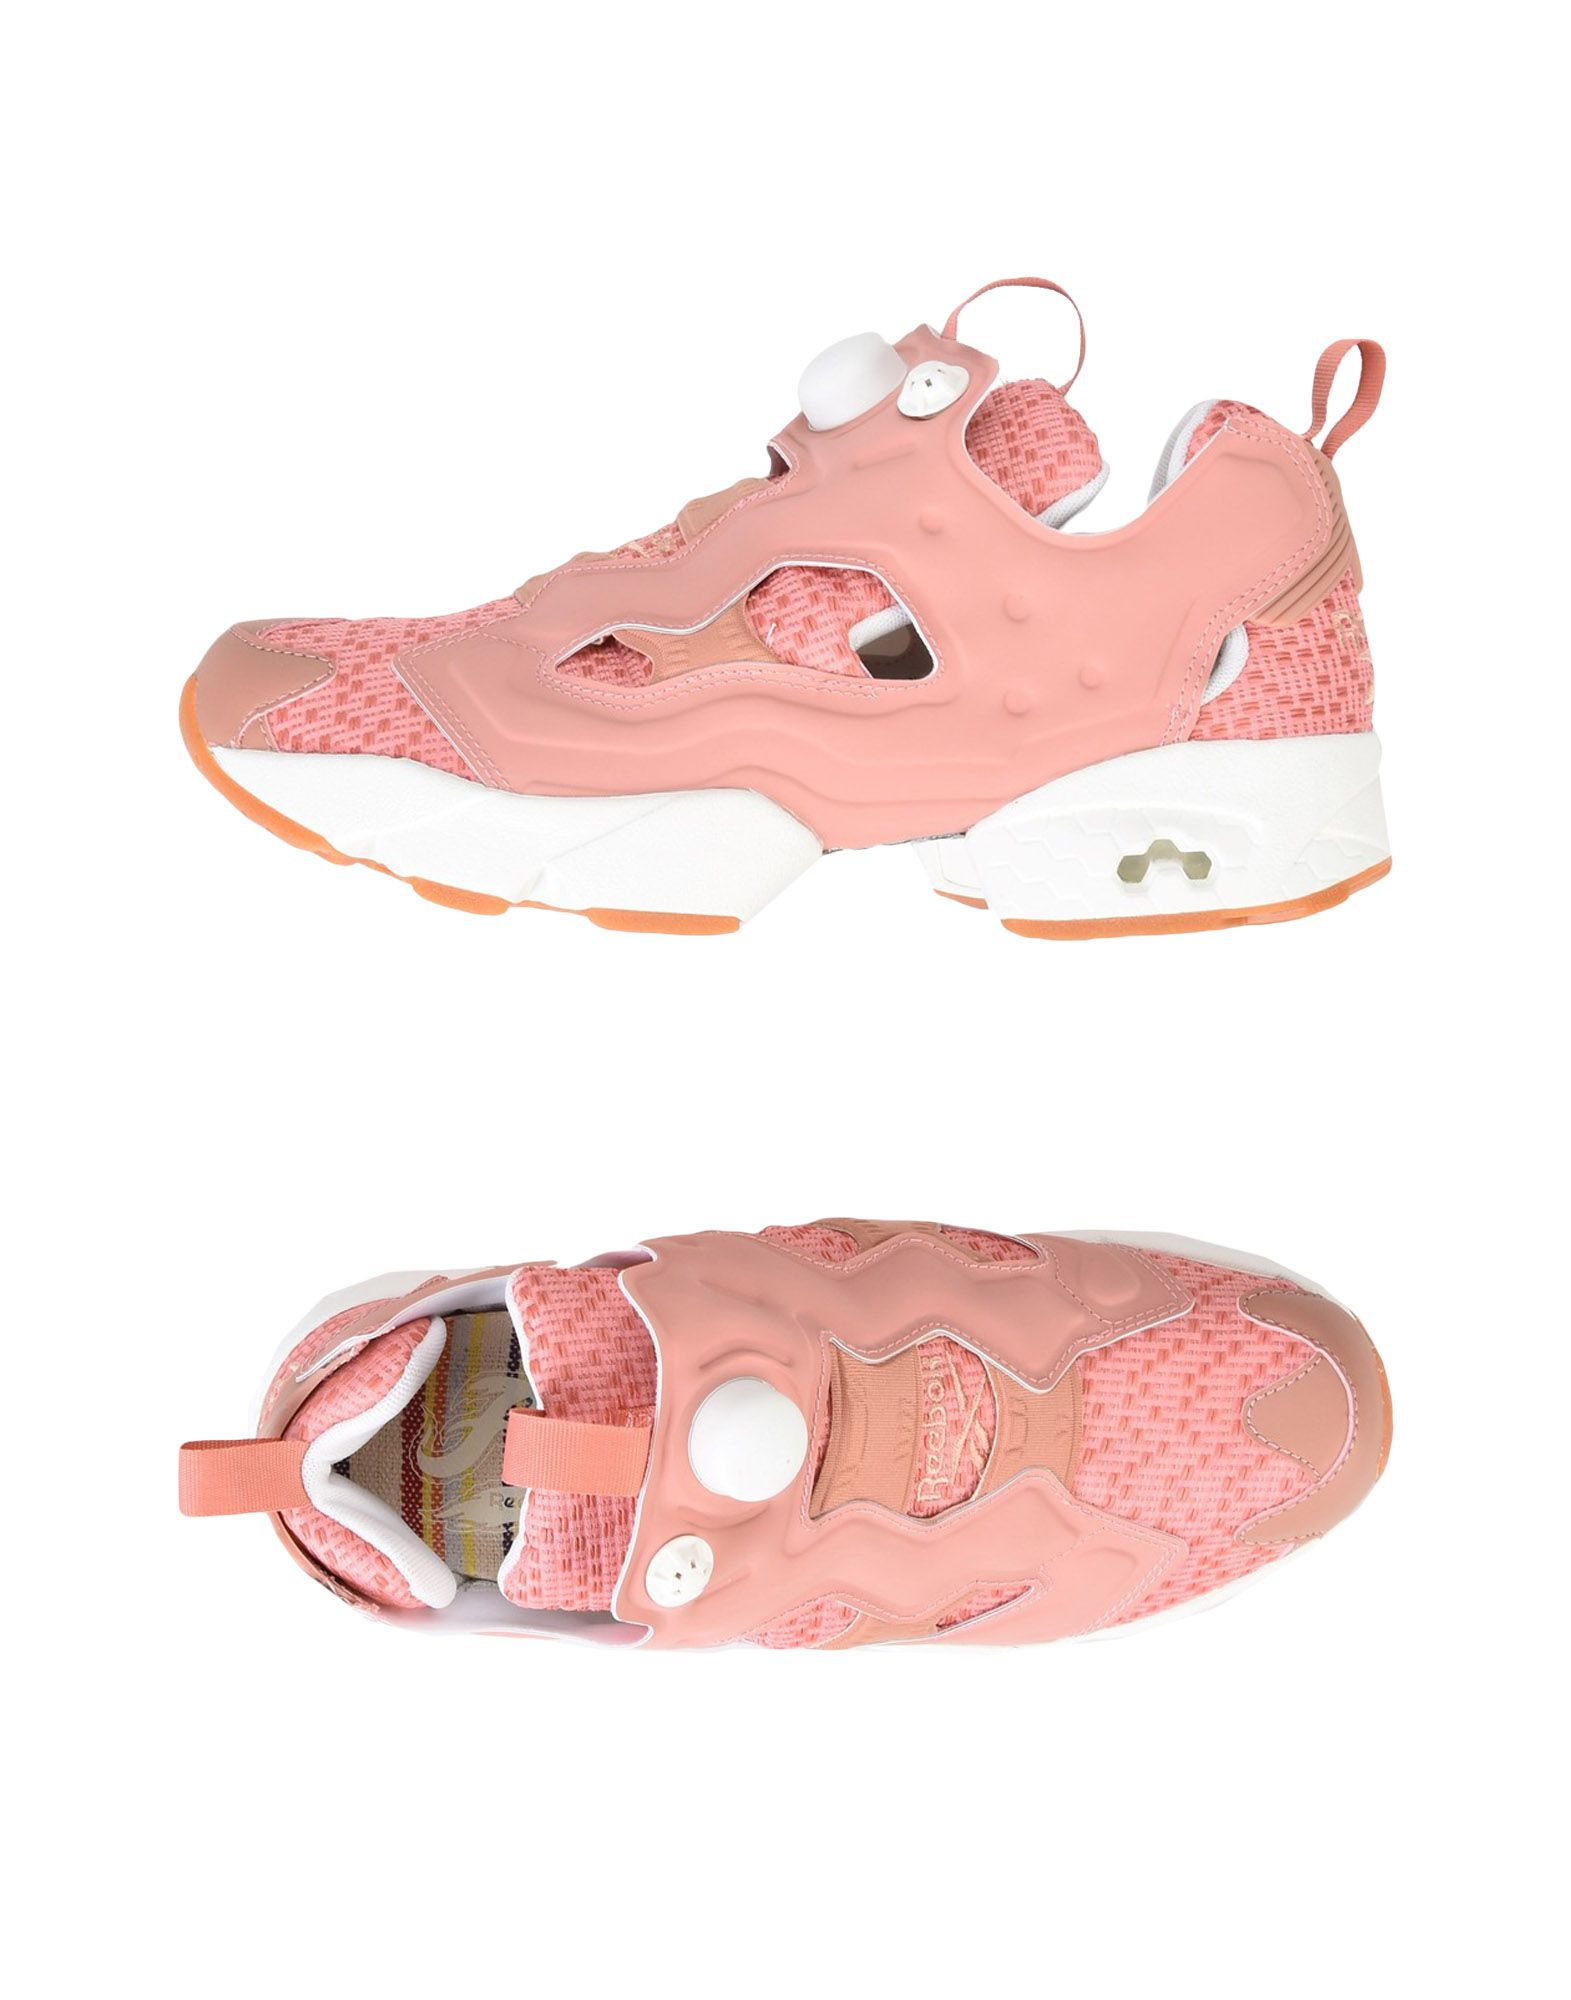 Baskets Reebok Instapump Fury Off - Femme - Baskets Reebok Rose Chaussures casual sauvages